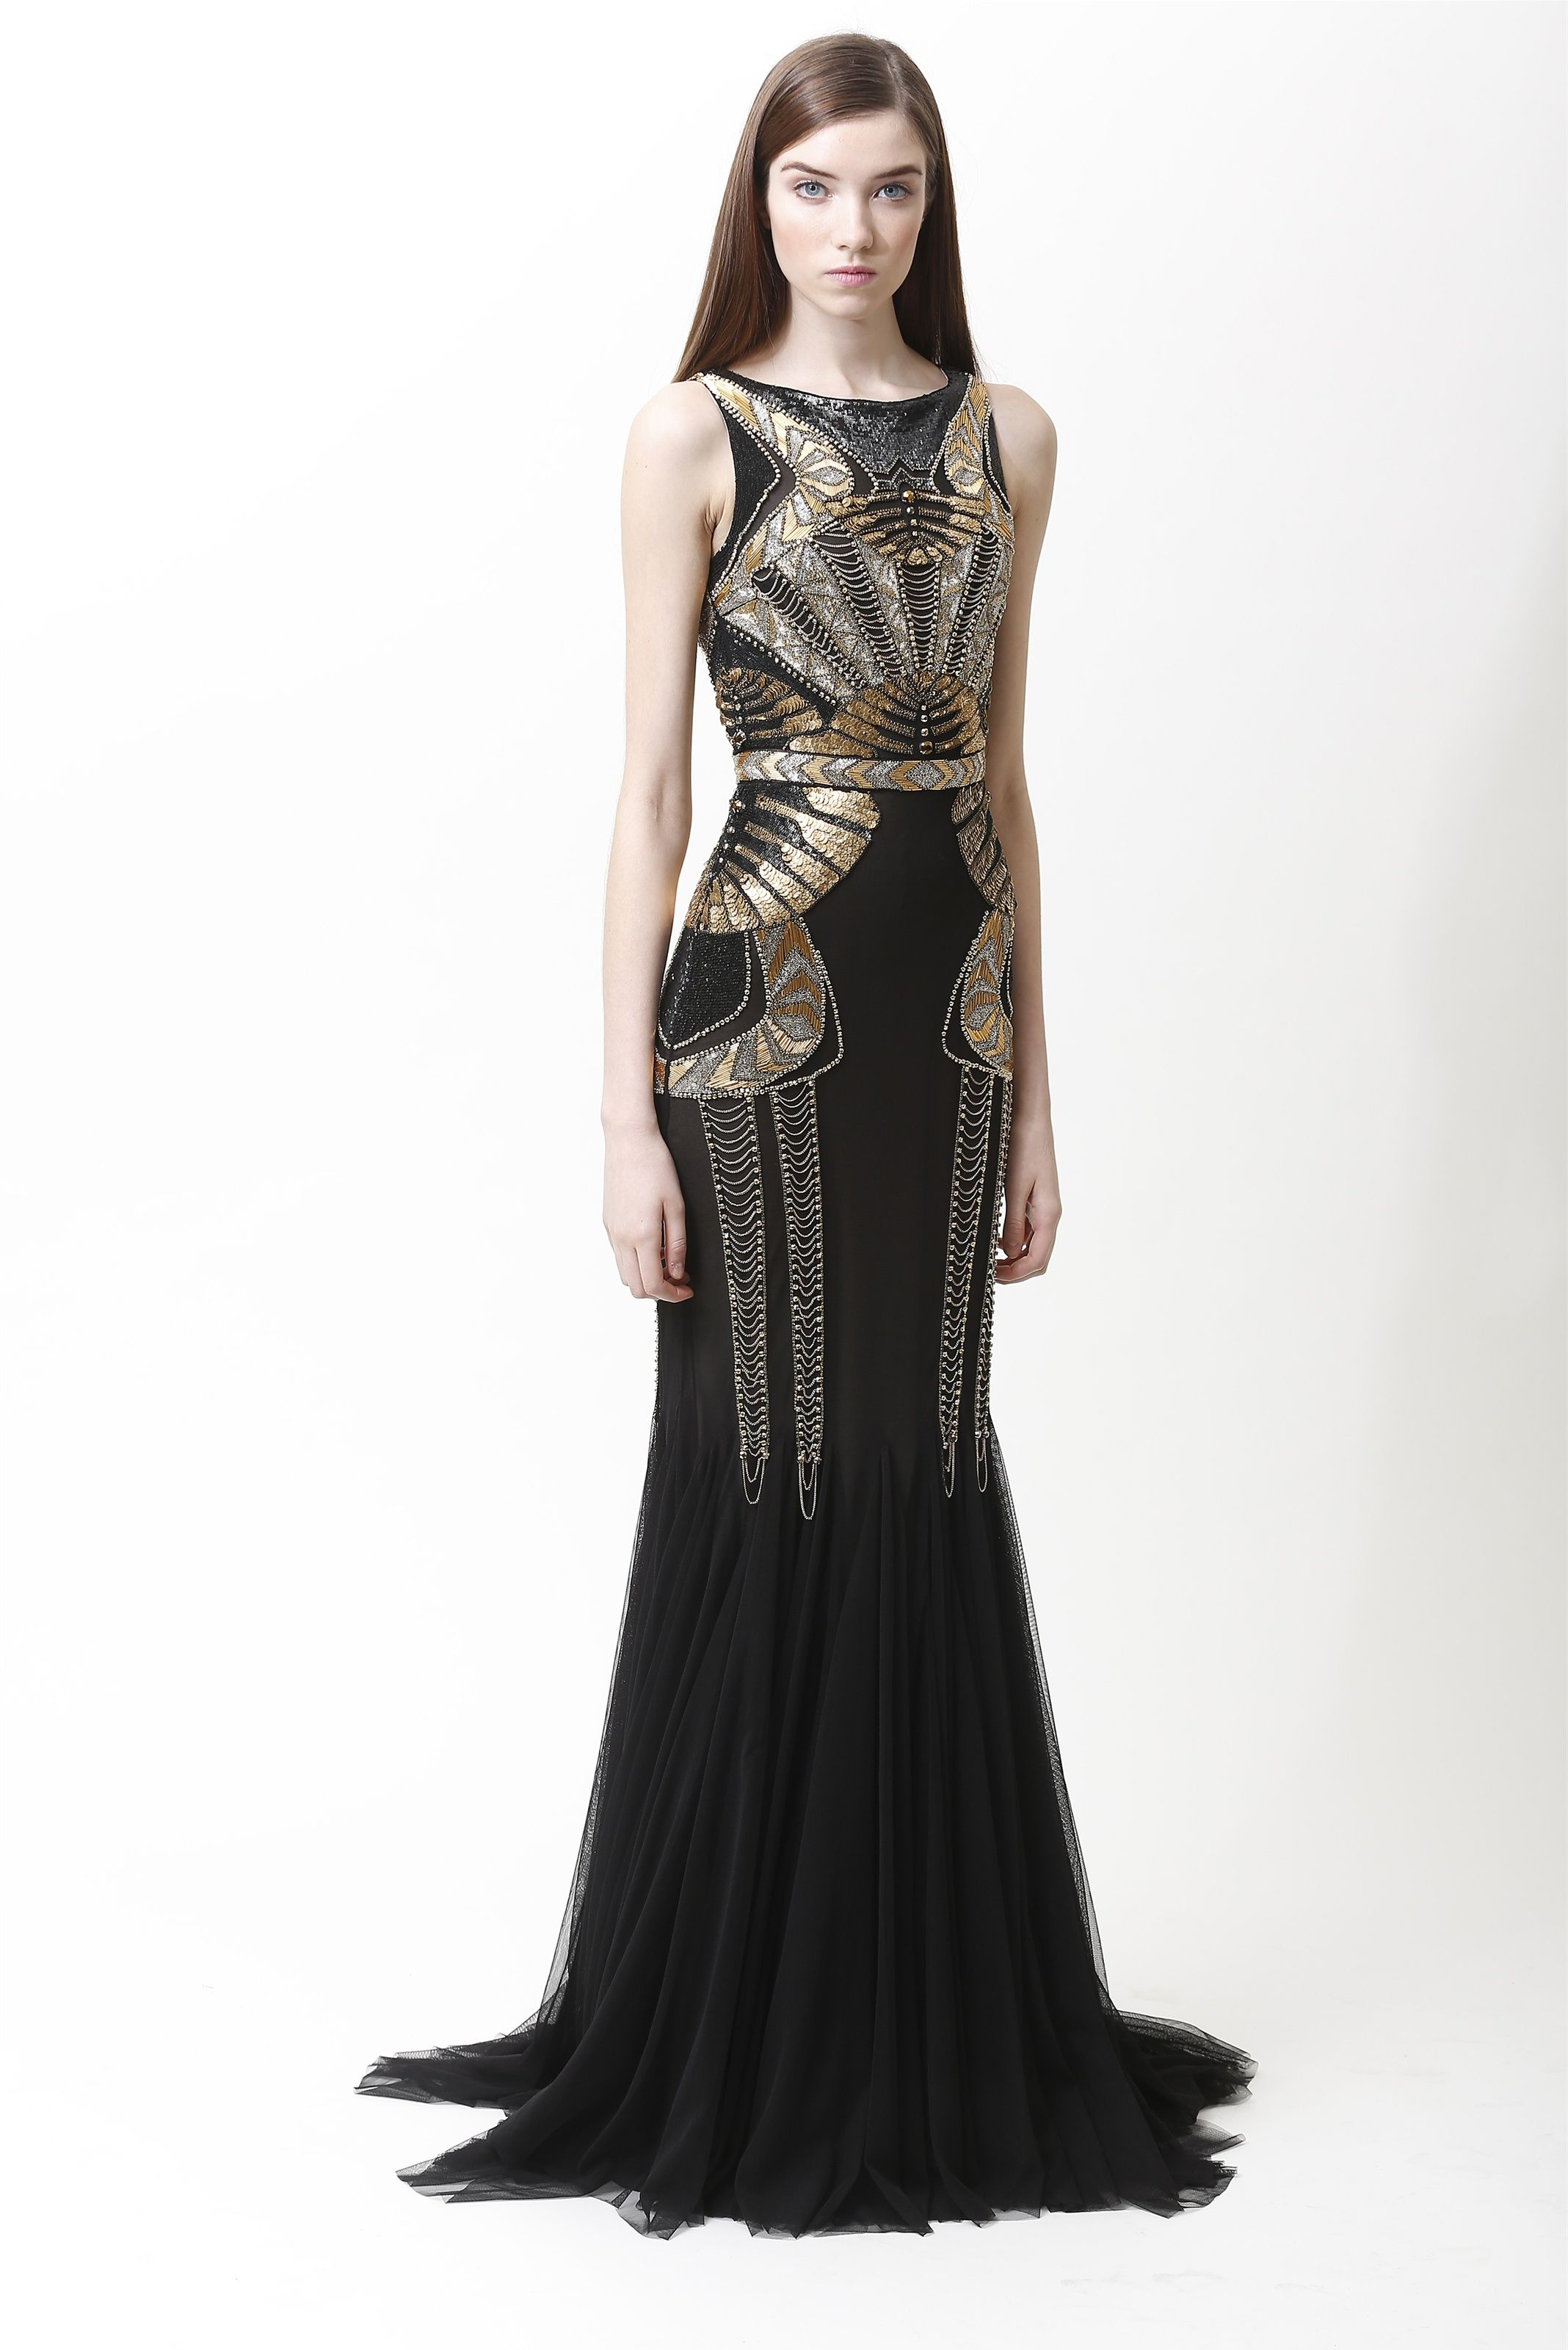 Great gatsby themed wedding dress  This Badgley Mischka PreFall  black and gold evening dress